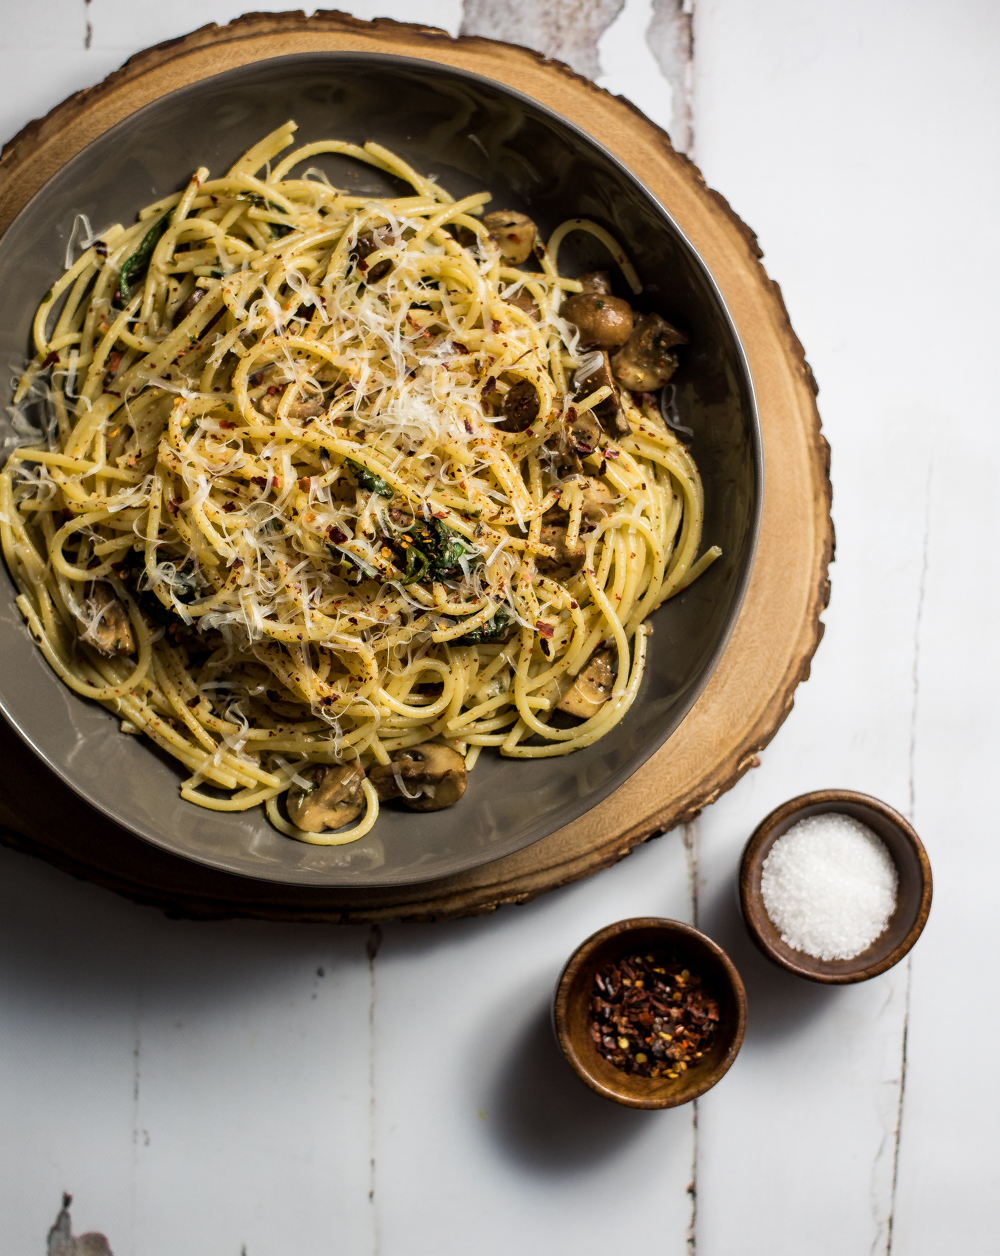 The sound of Spaghetti Aglio e Olio with Wilted Spinach and Mushrooms may sound intimidating, but this classic Italian dish with a twist, is super simple!